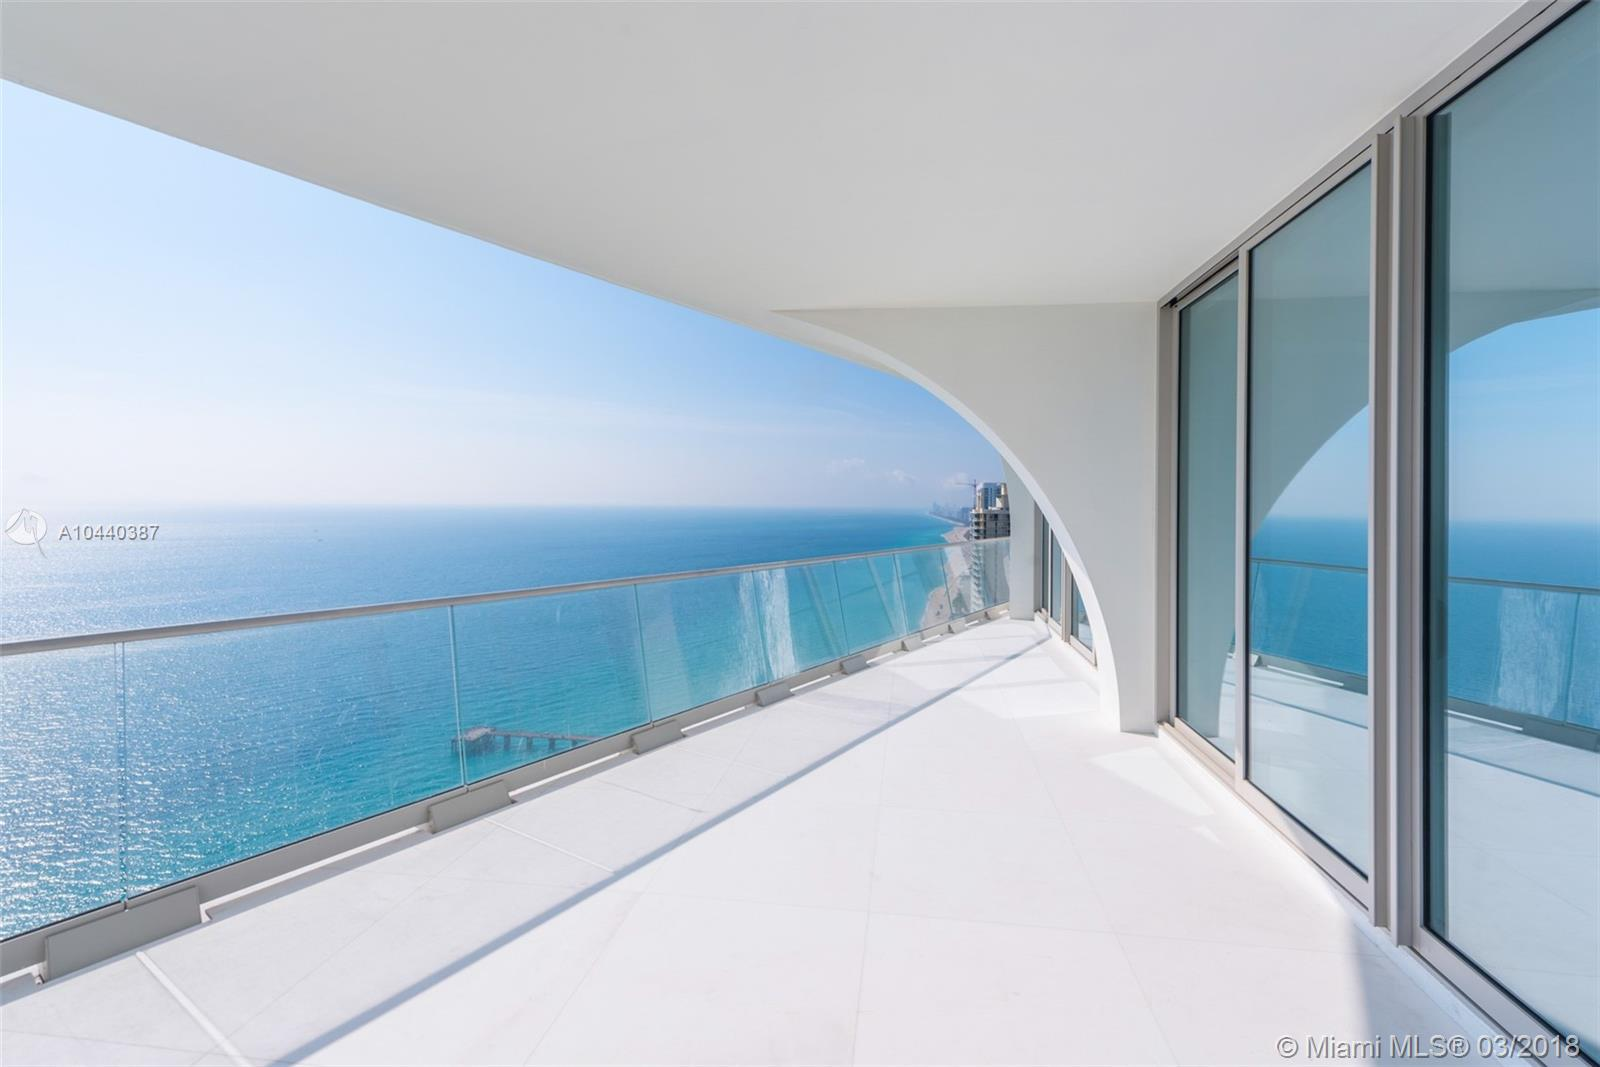 16901 Collins Ave, Unit #3905 Luxury Real Estate